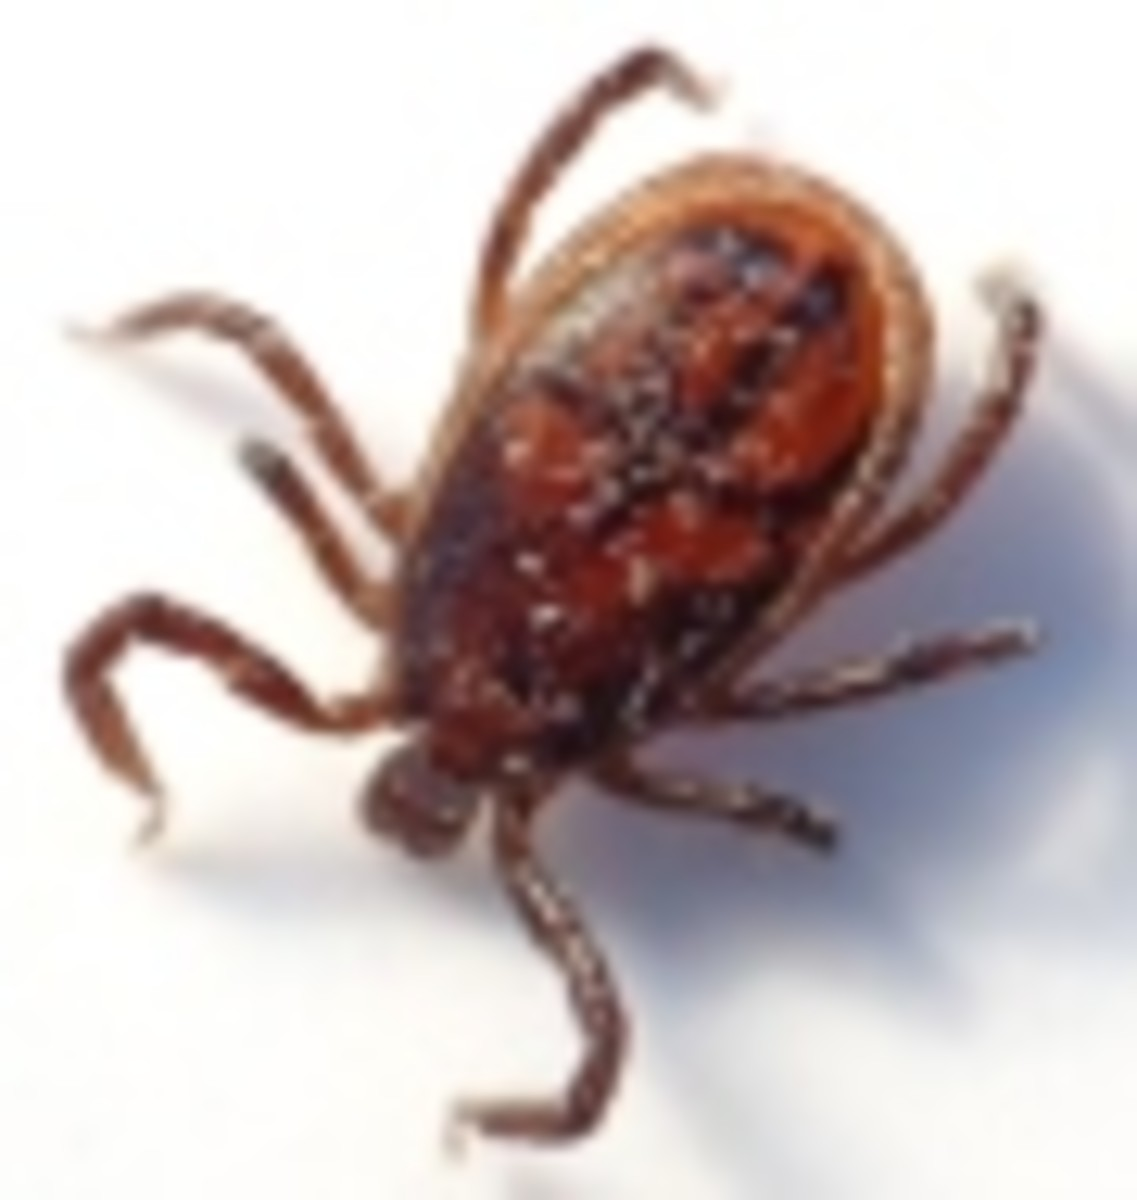 Ticks and fleas too, are repulsed by certain essential oils.